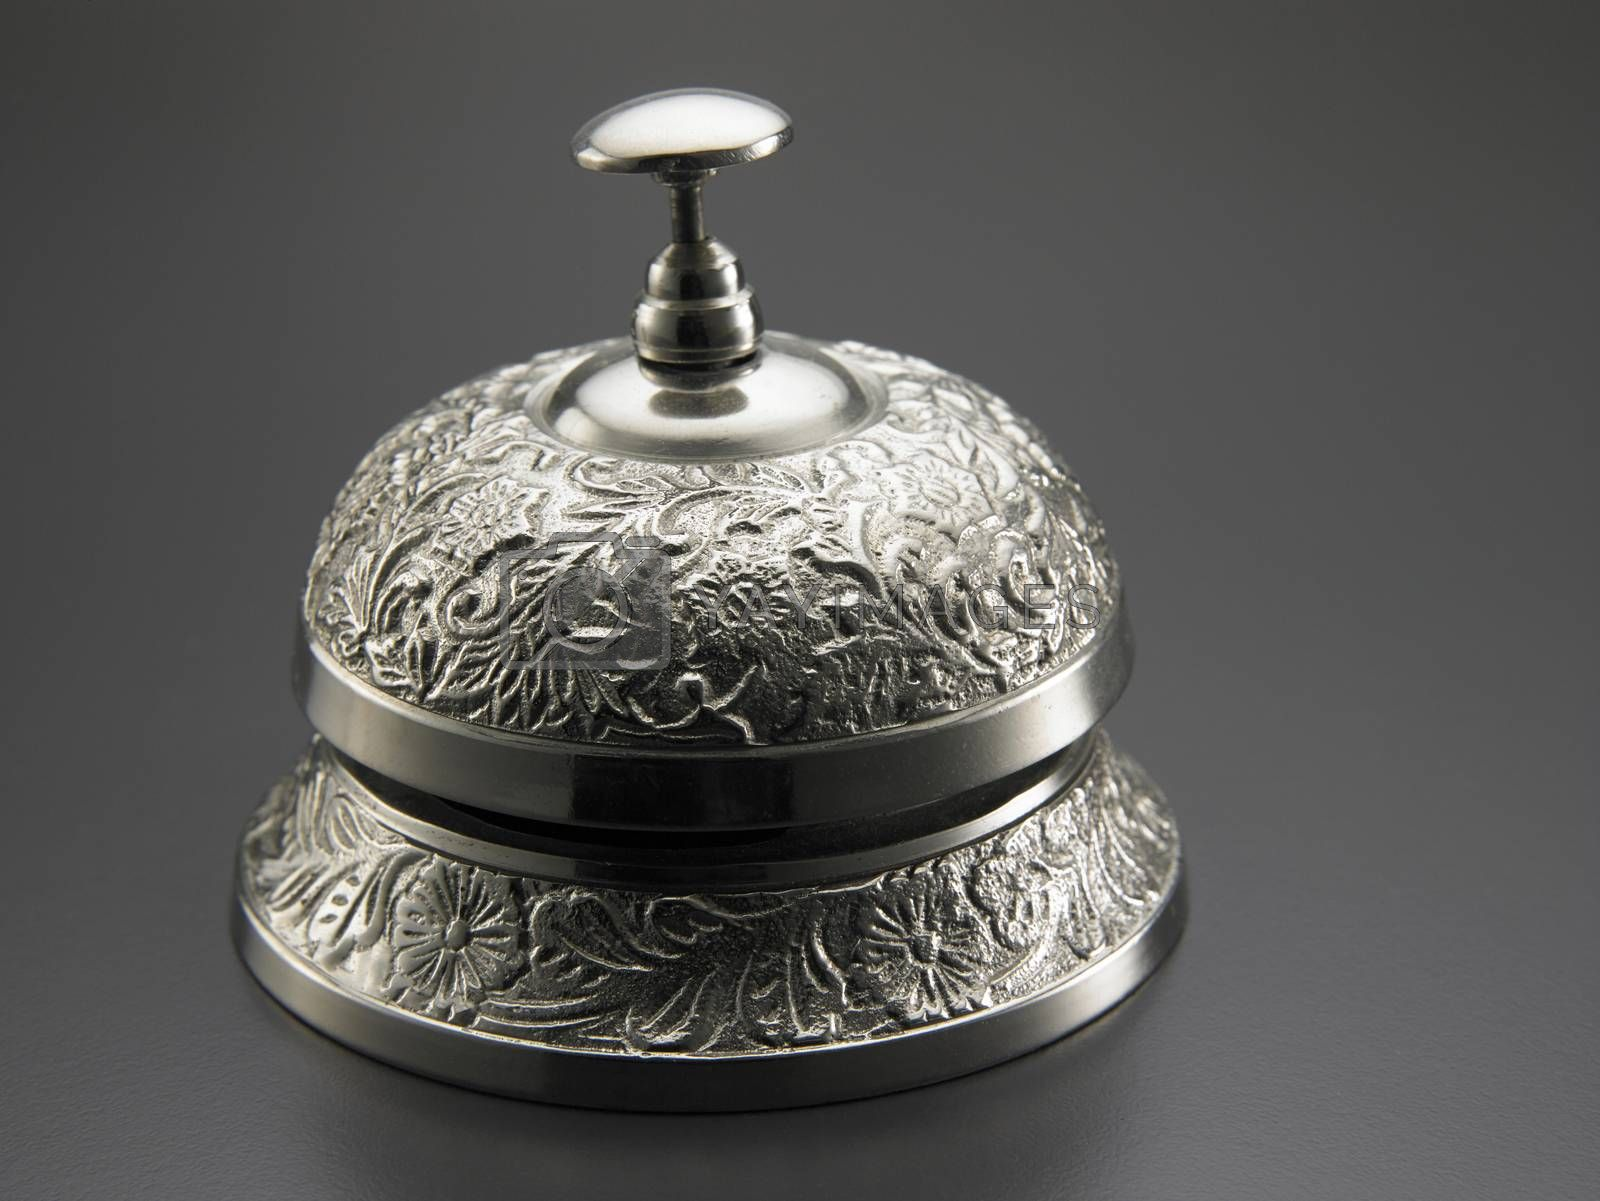 close up of the desk bell on the gray background